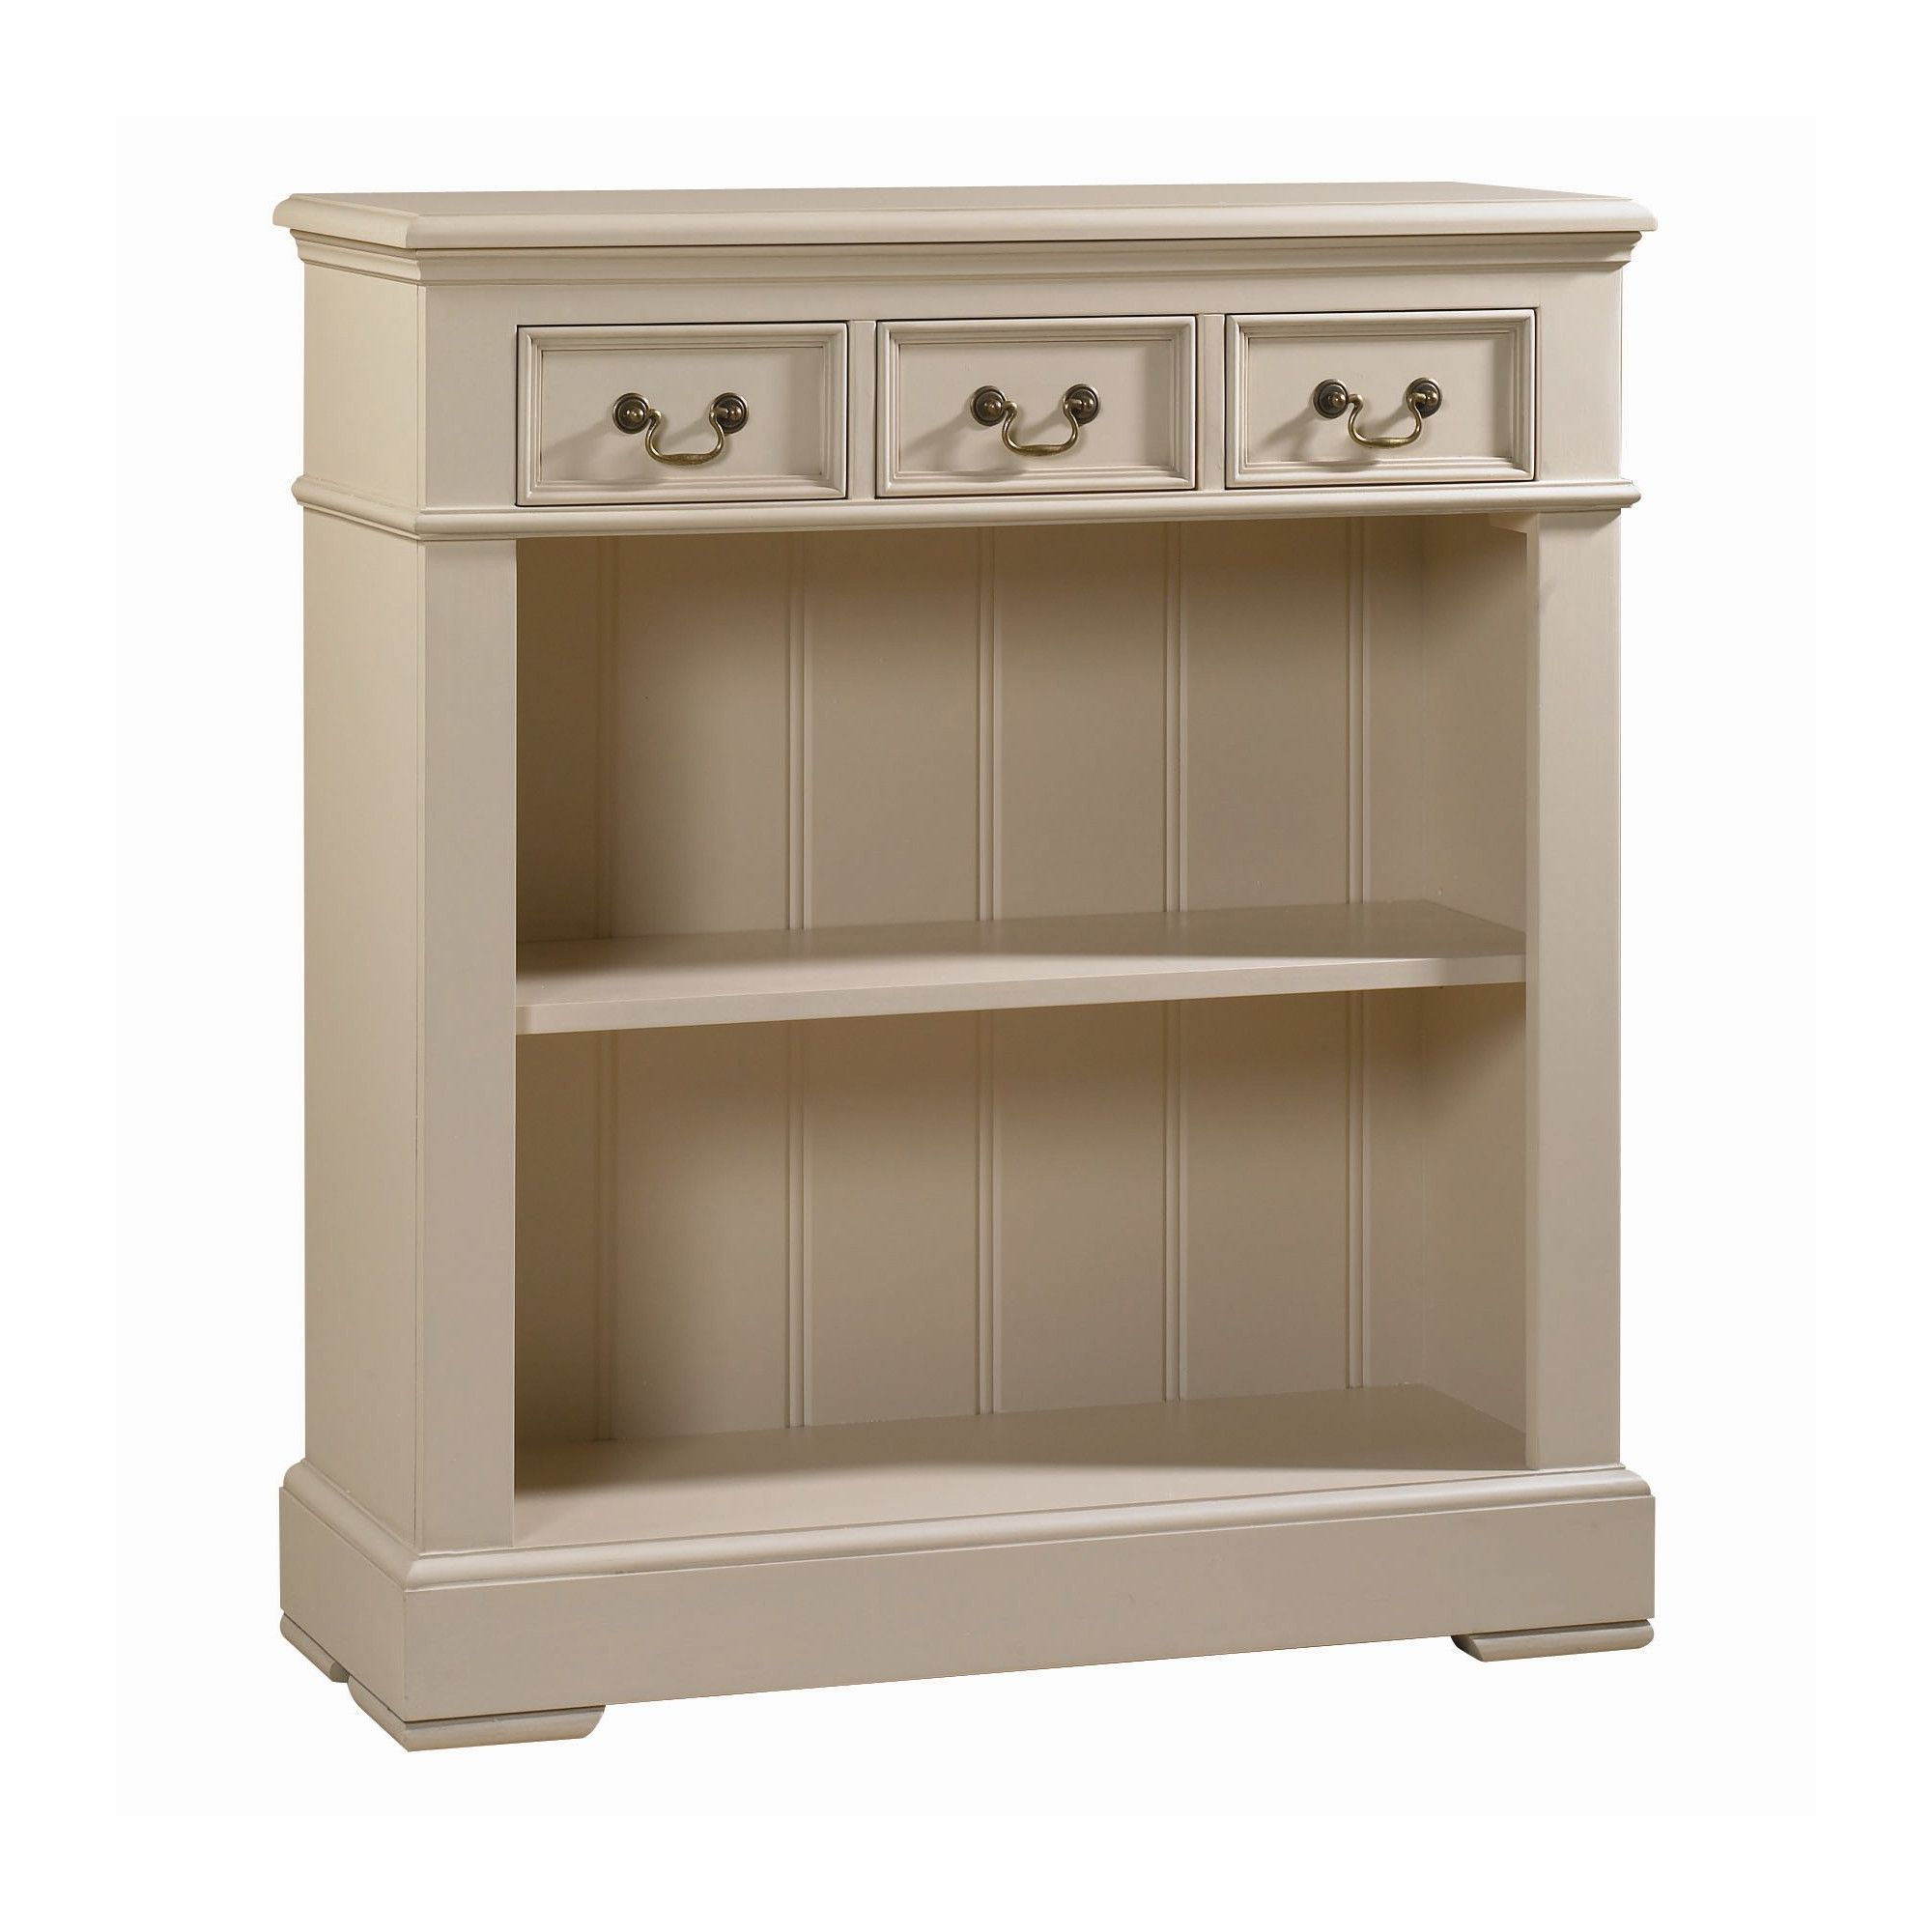 YP Furniture Bookcase - Oak Top and Ivory at Tesco Direct